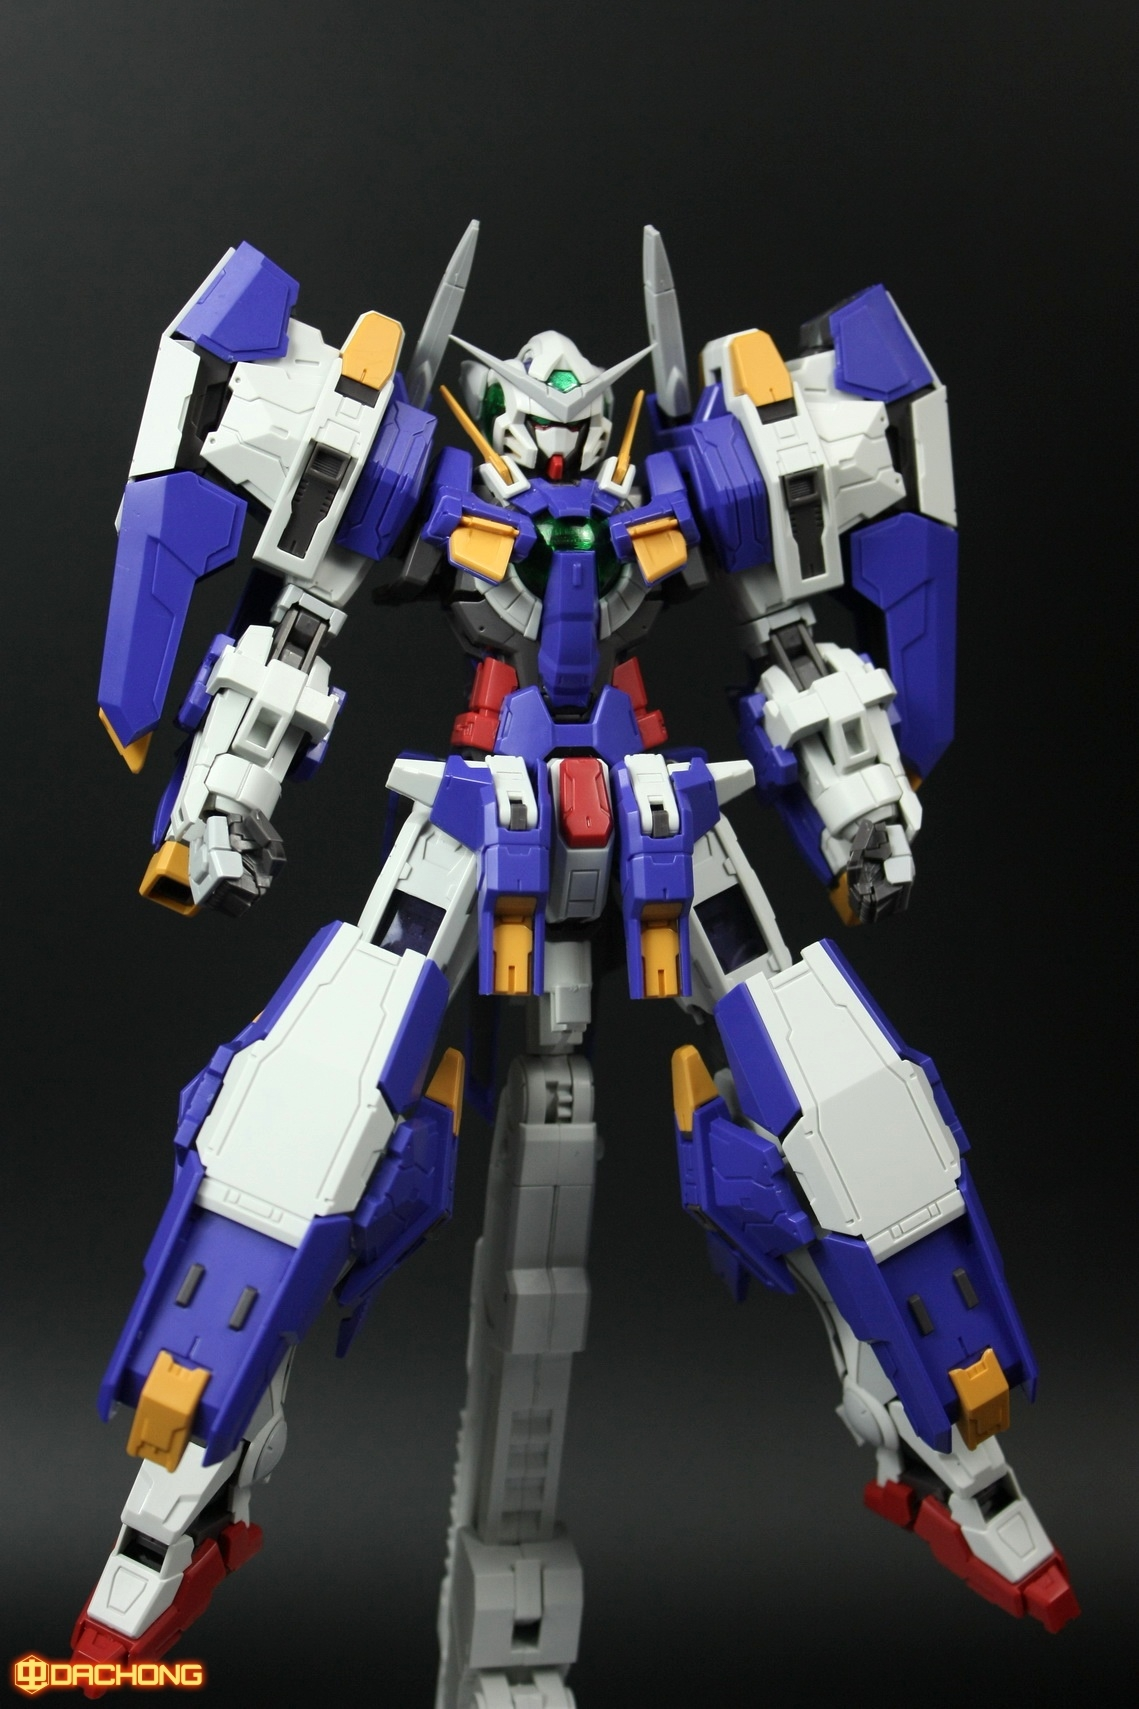 S254_MG_exia_HS_review_inask_066.jpg